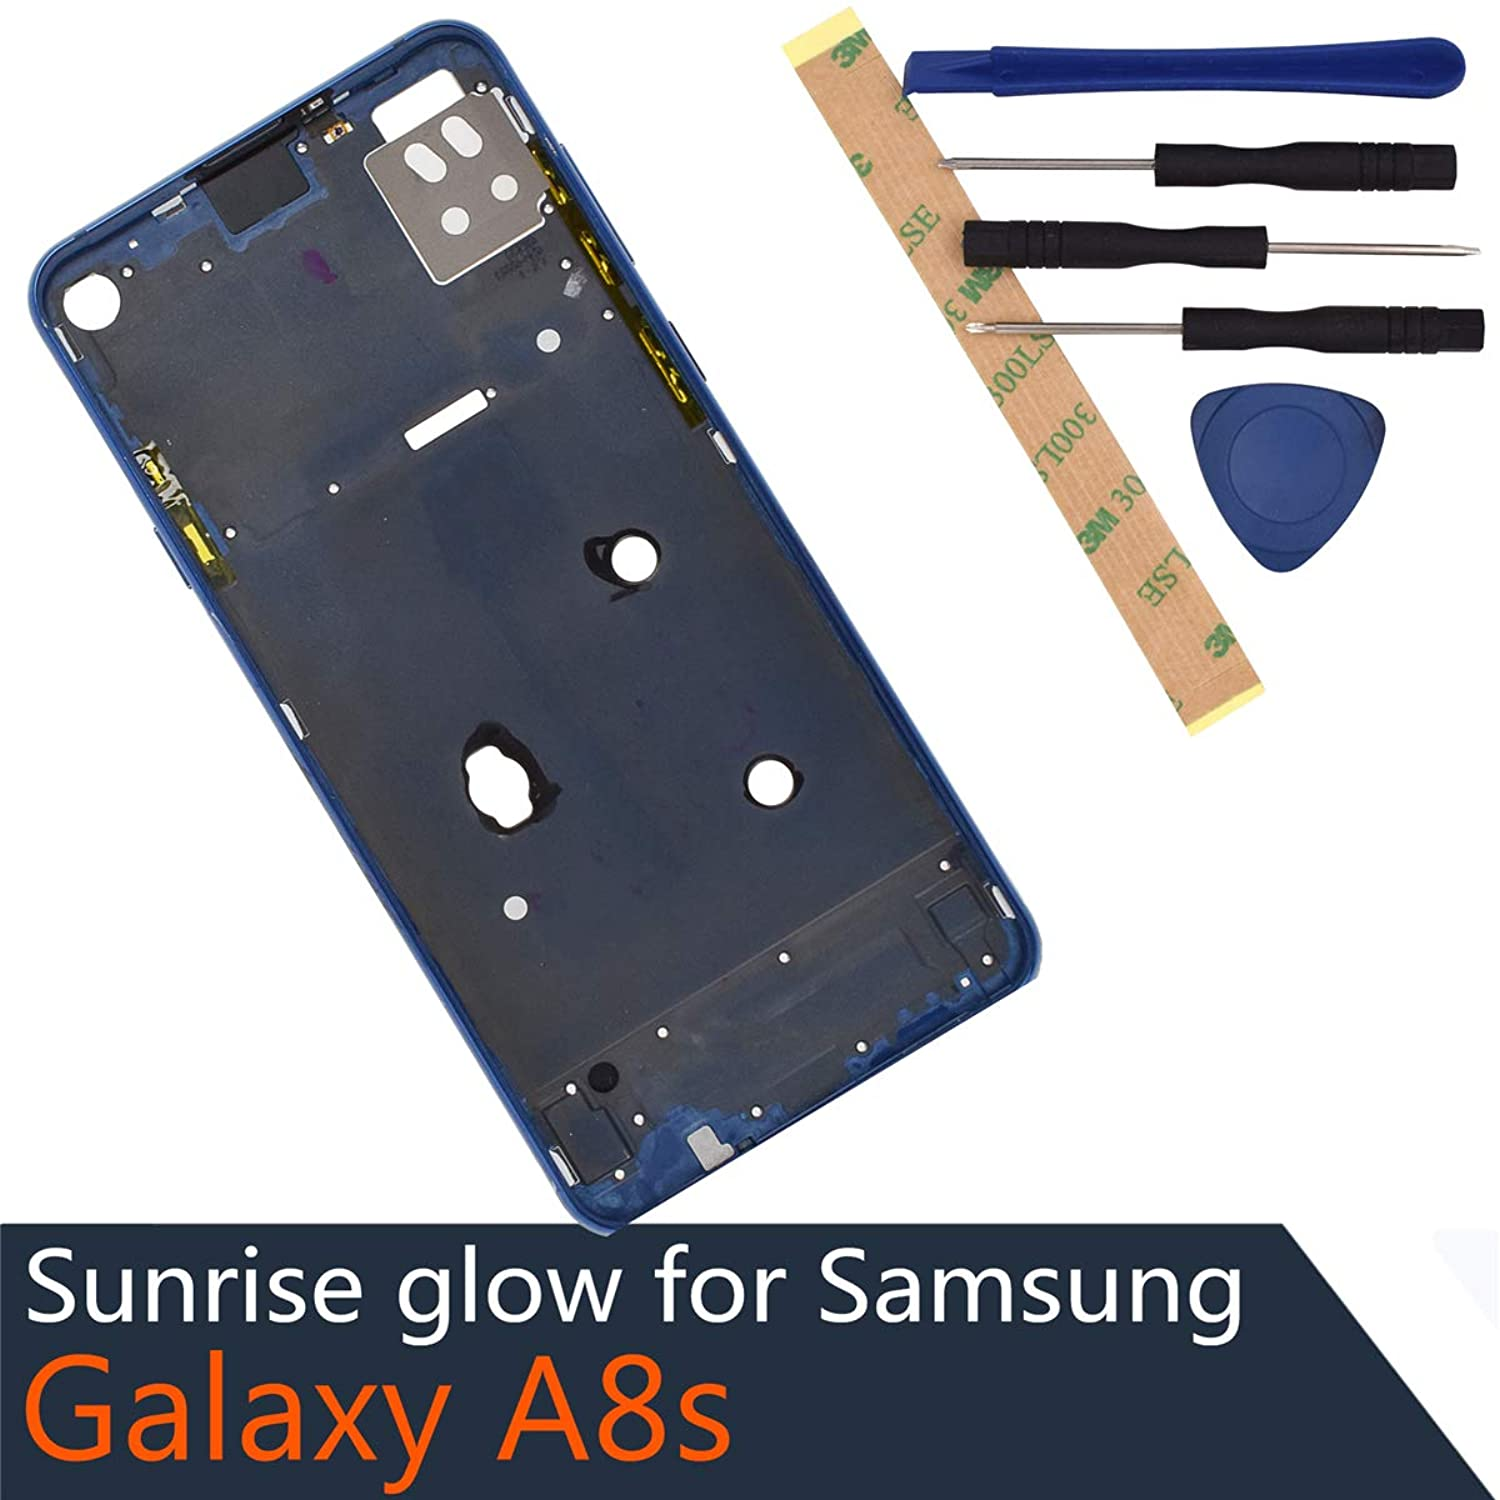 A9 Pro 2019Metal Middle Frame Replacement for Samsung Galaxy A8s A9 Pro 2019 blue